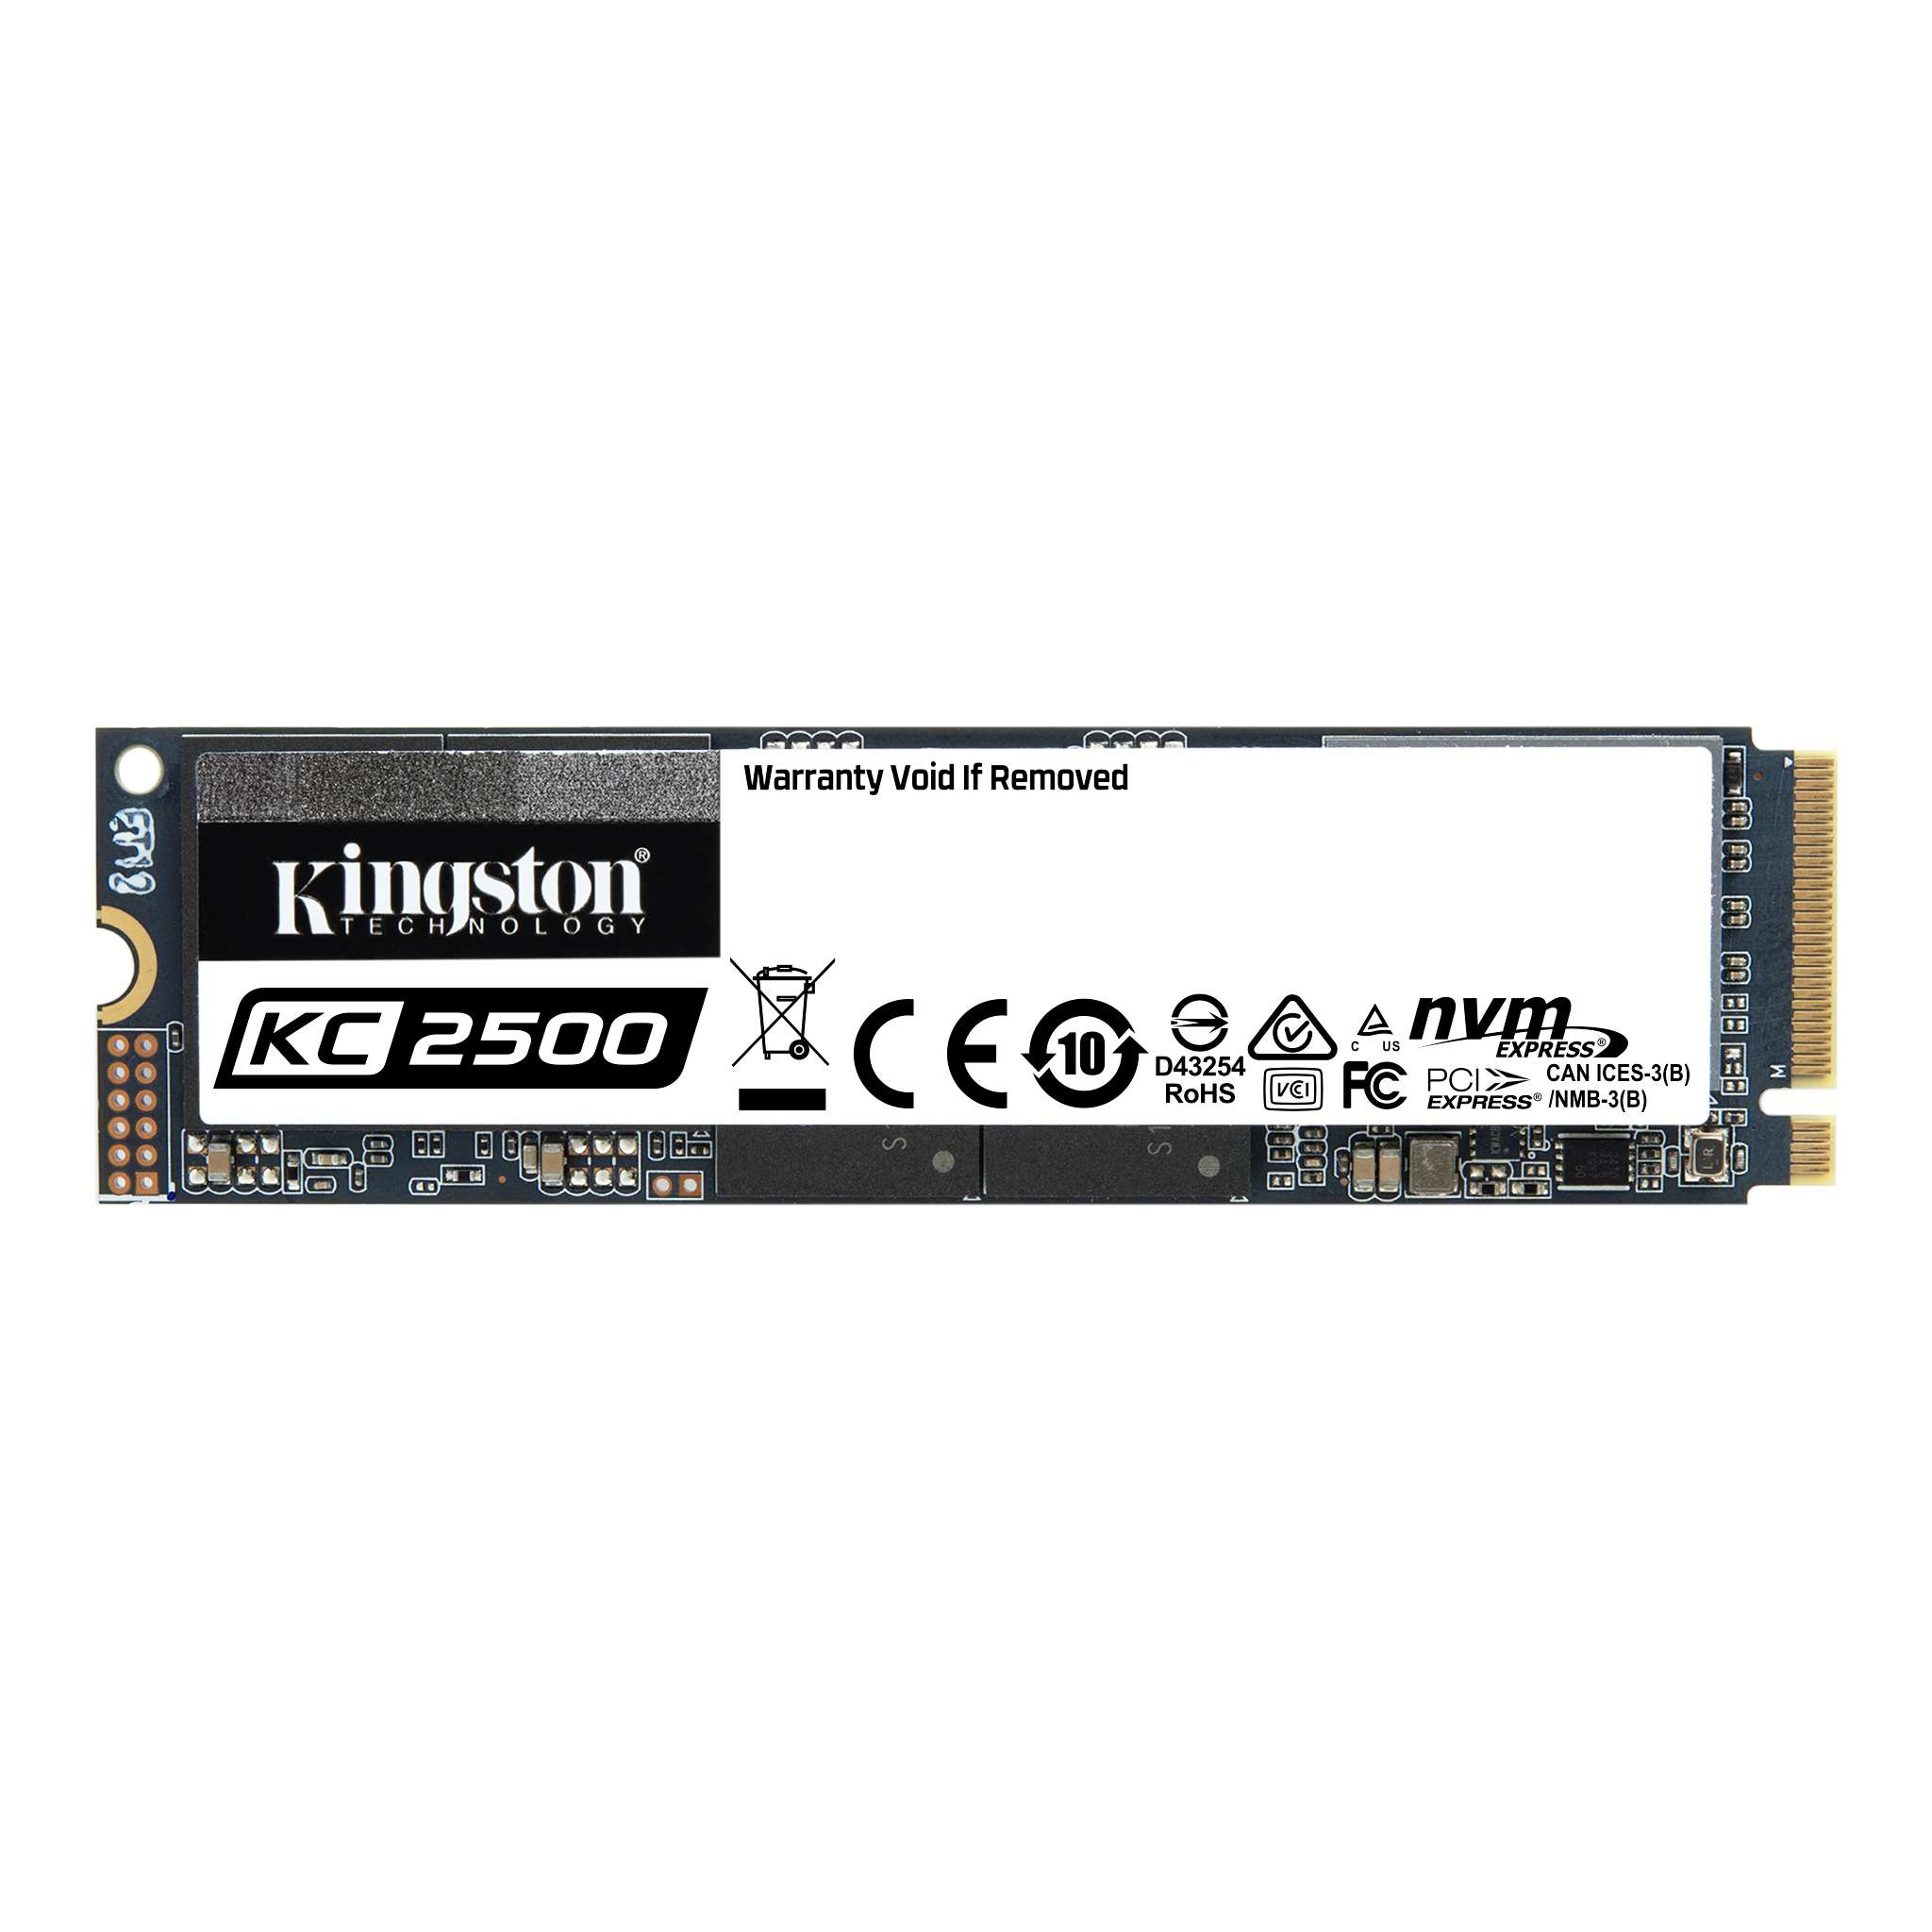 KINGSTON 250GB KC2500 SKC2500M8/250G 3500- 1200MB/s M2 PCIe NVME Kurumsal Disk